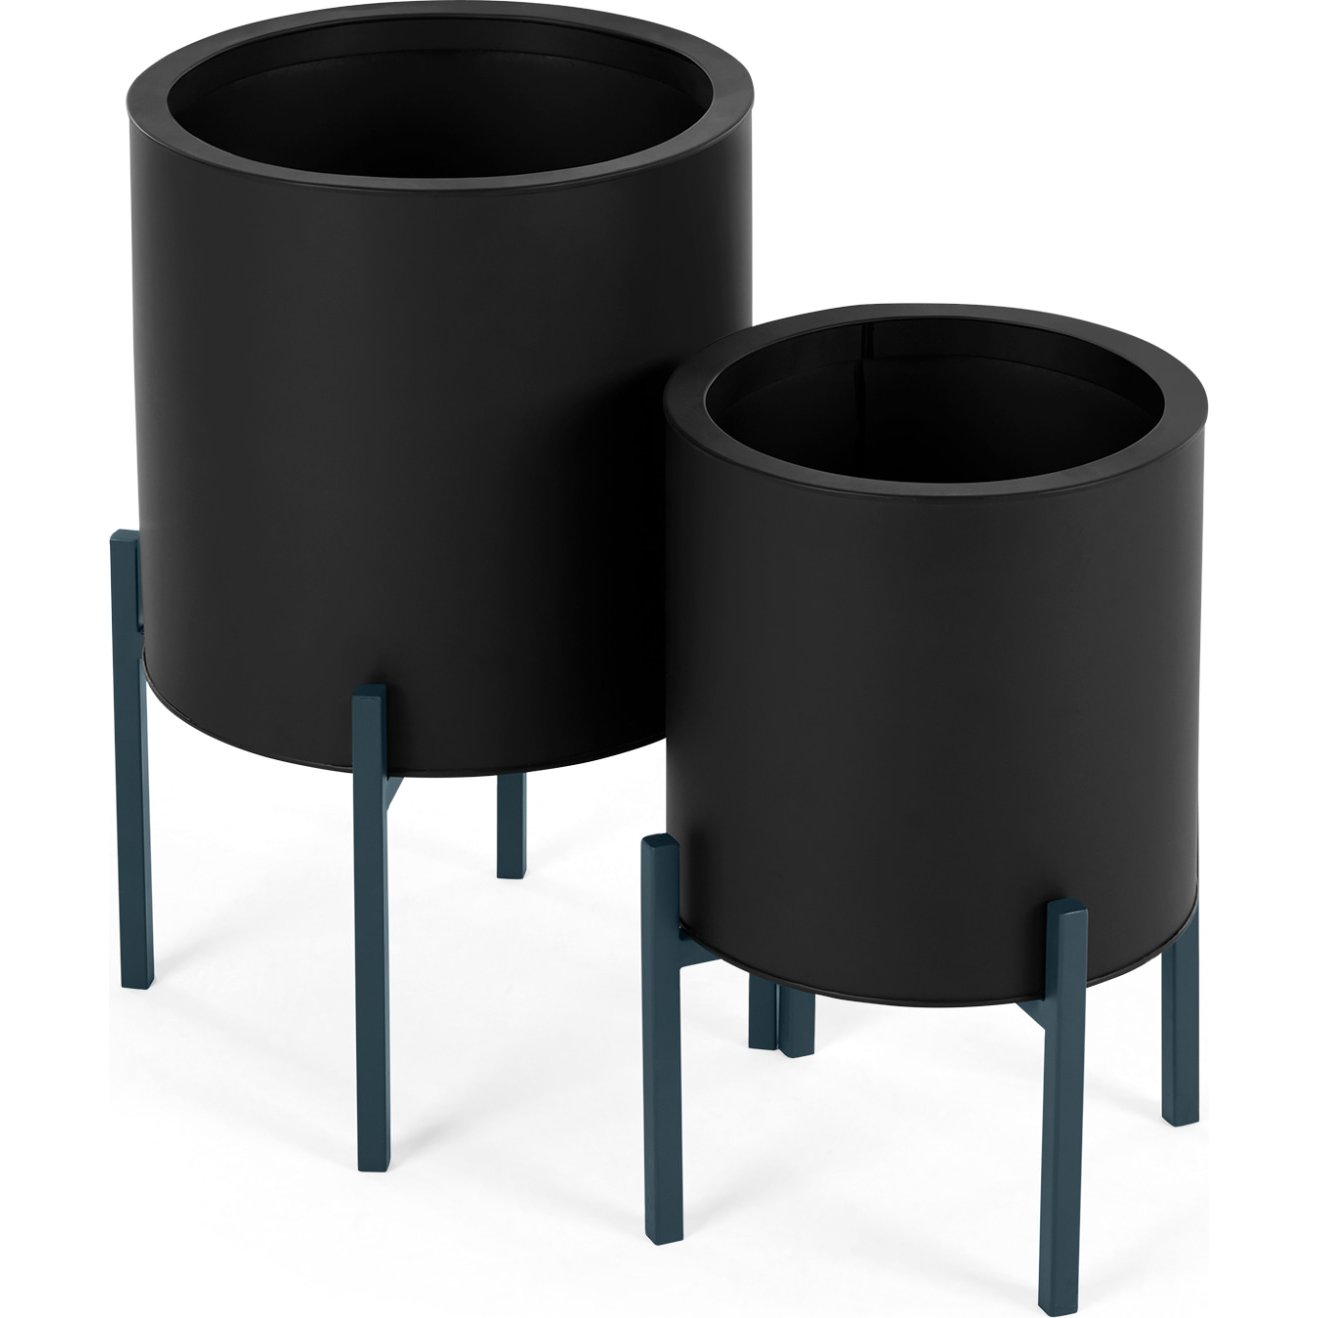 image-Noor Set Of Two Galvanized Iron Round Plant Stands, Black & Teal